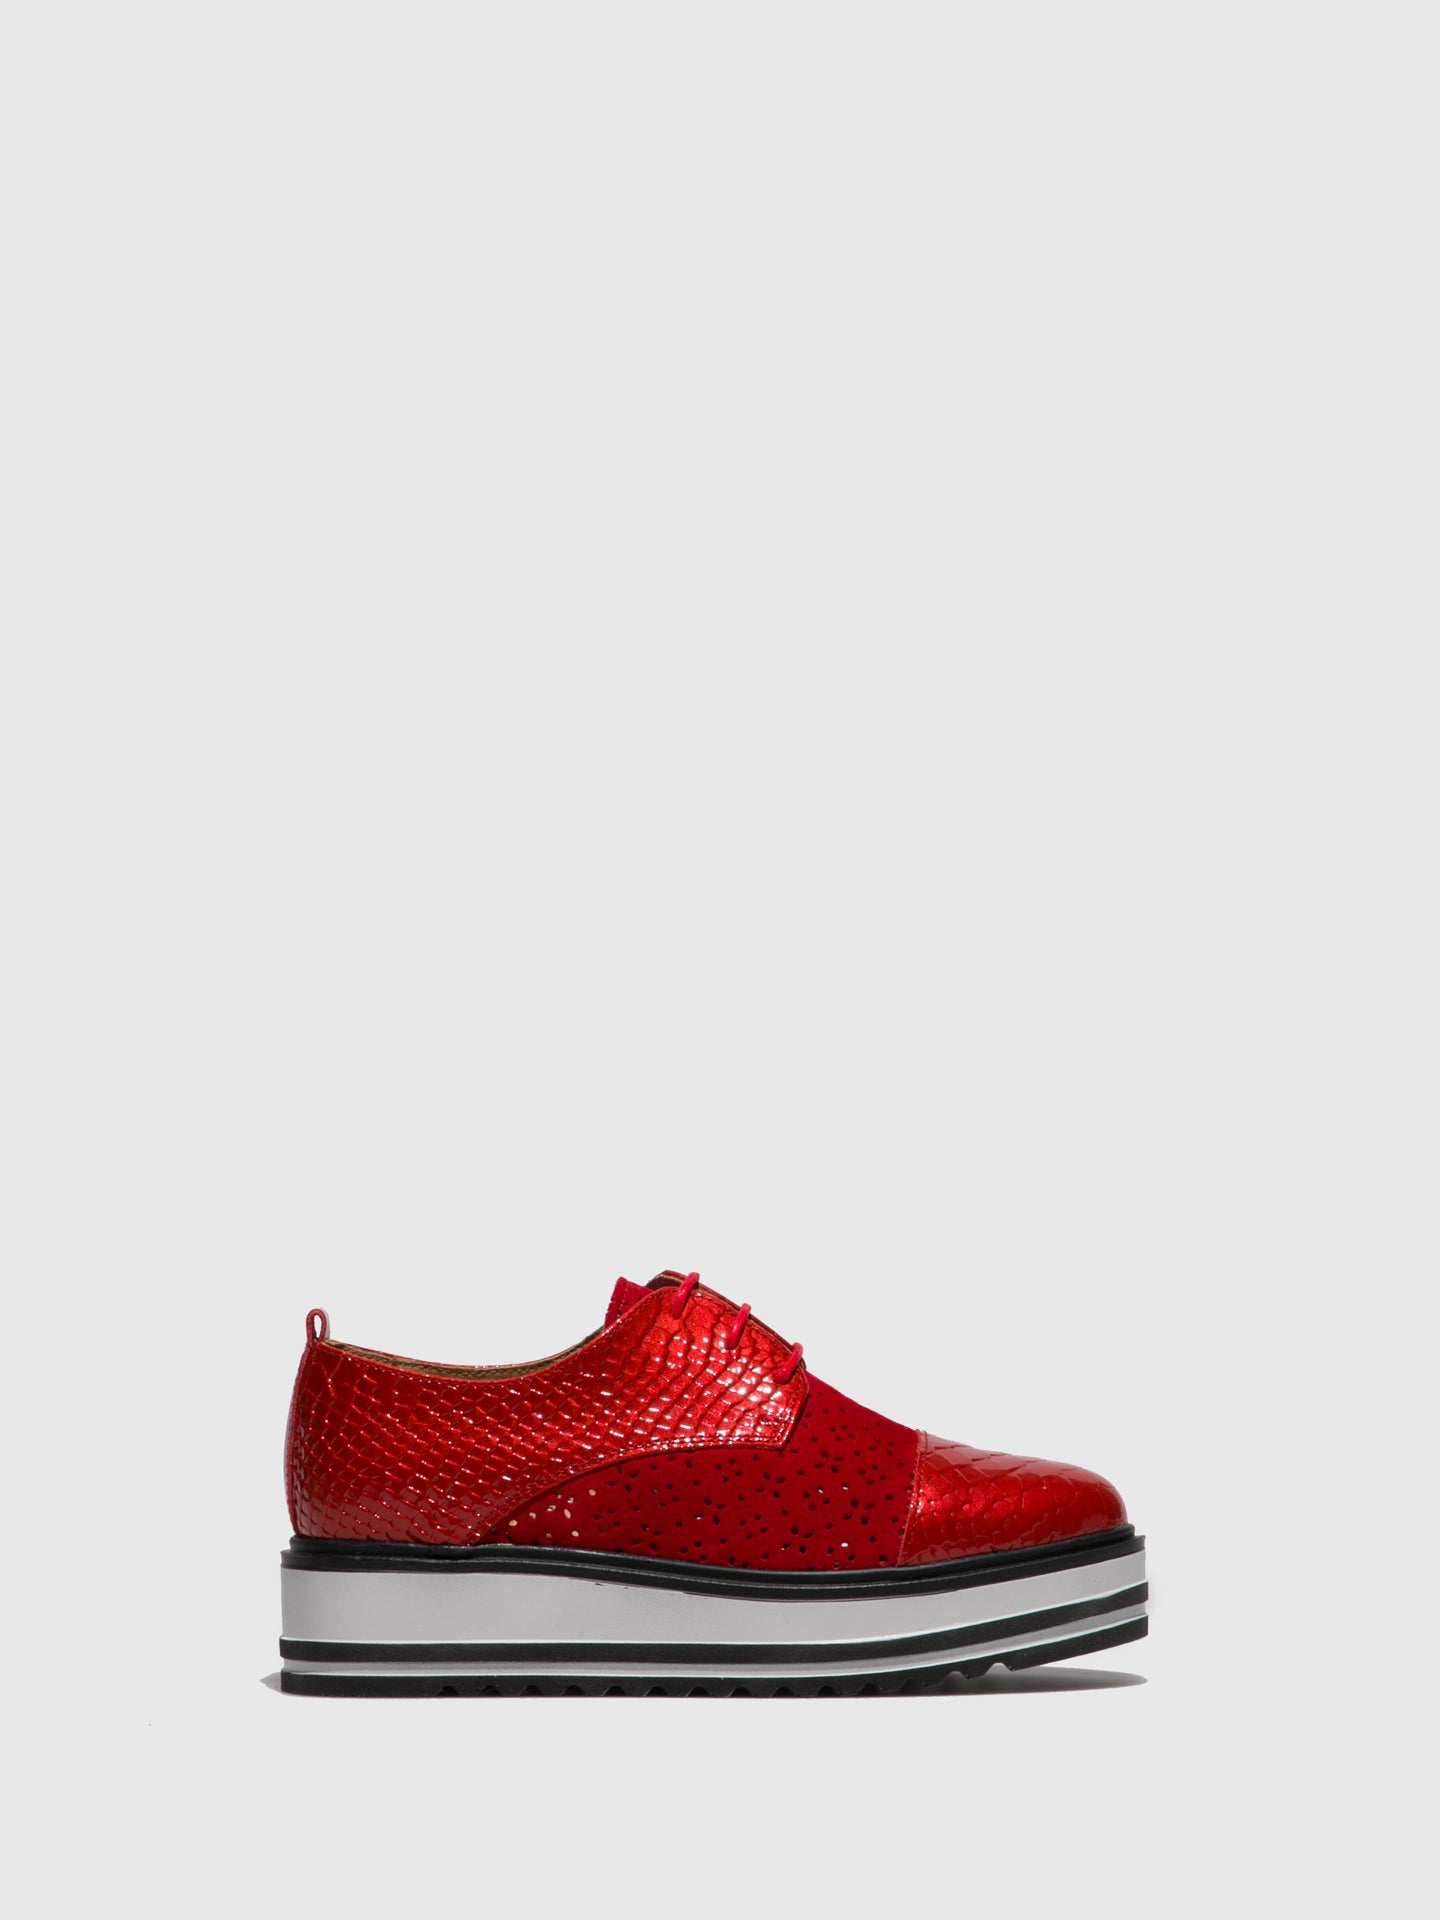 Foreva Red Lace-up Shoes